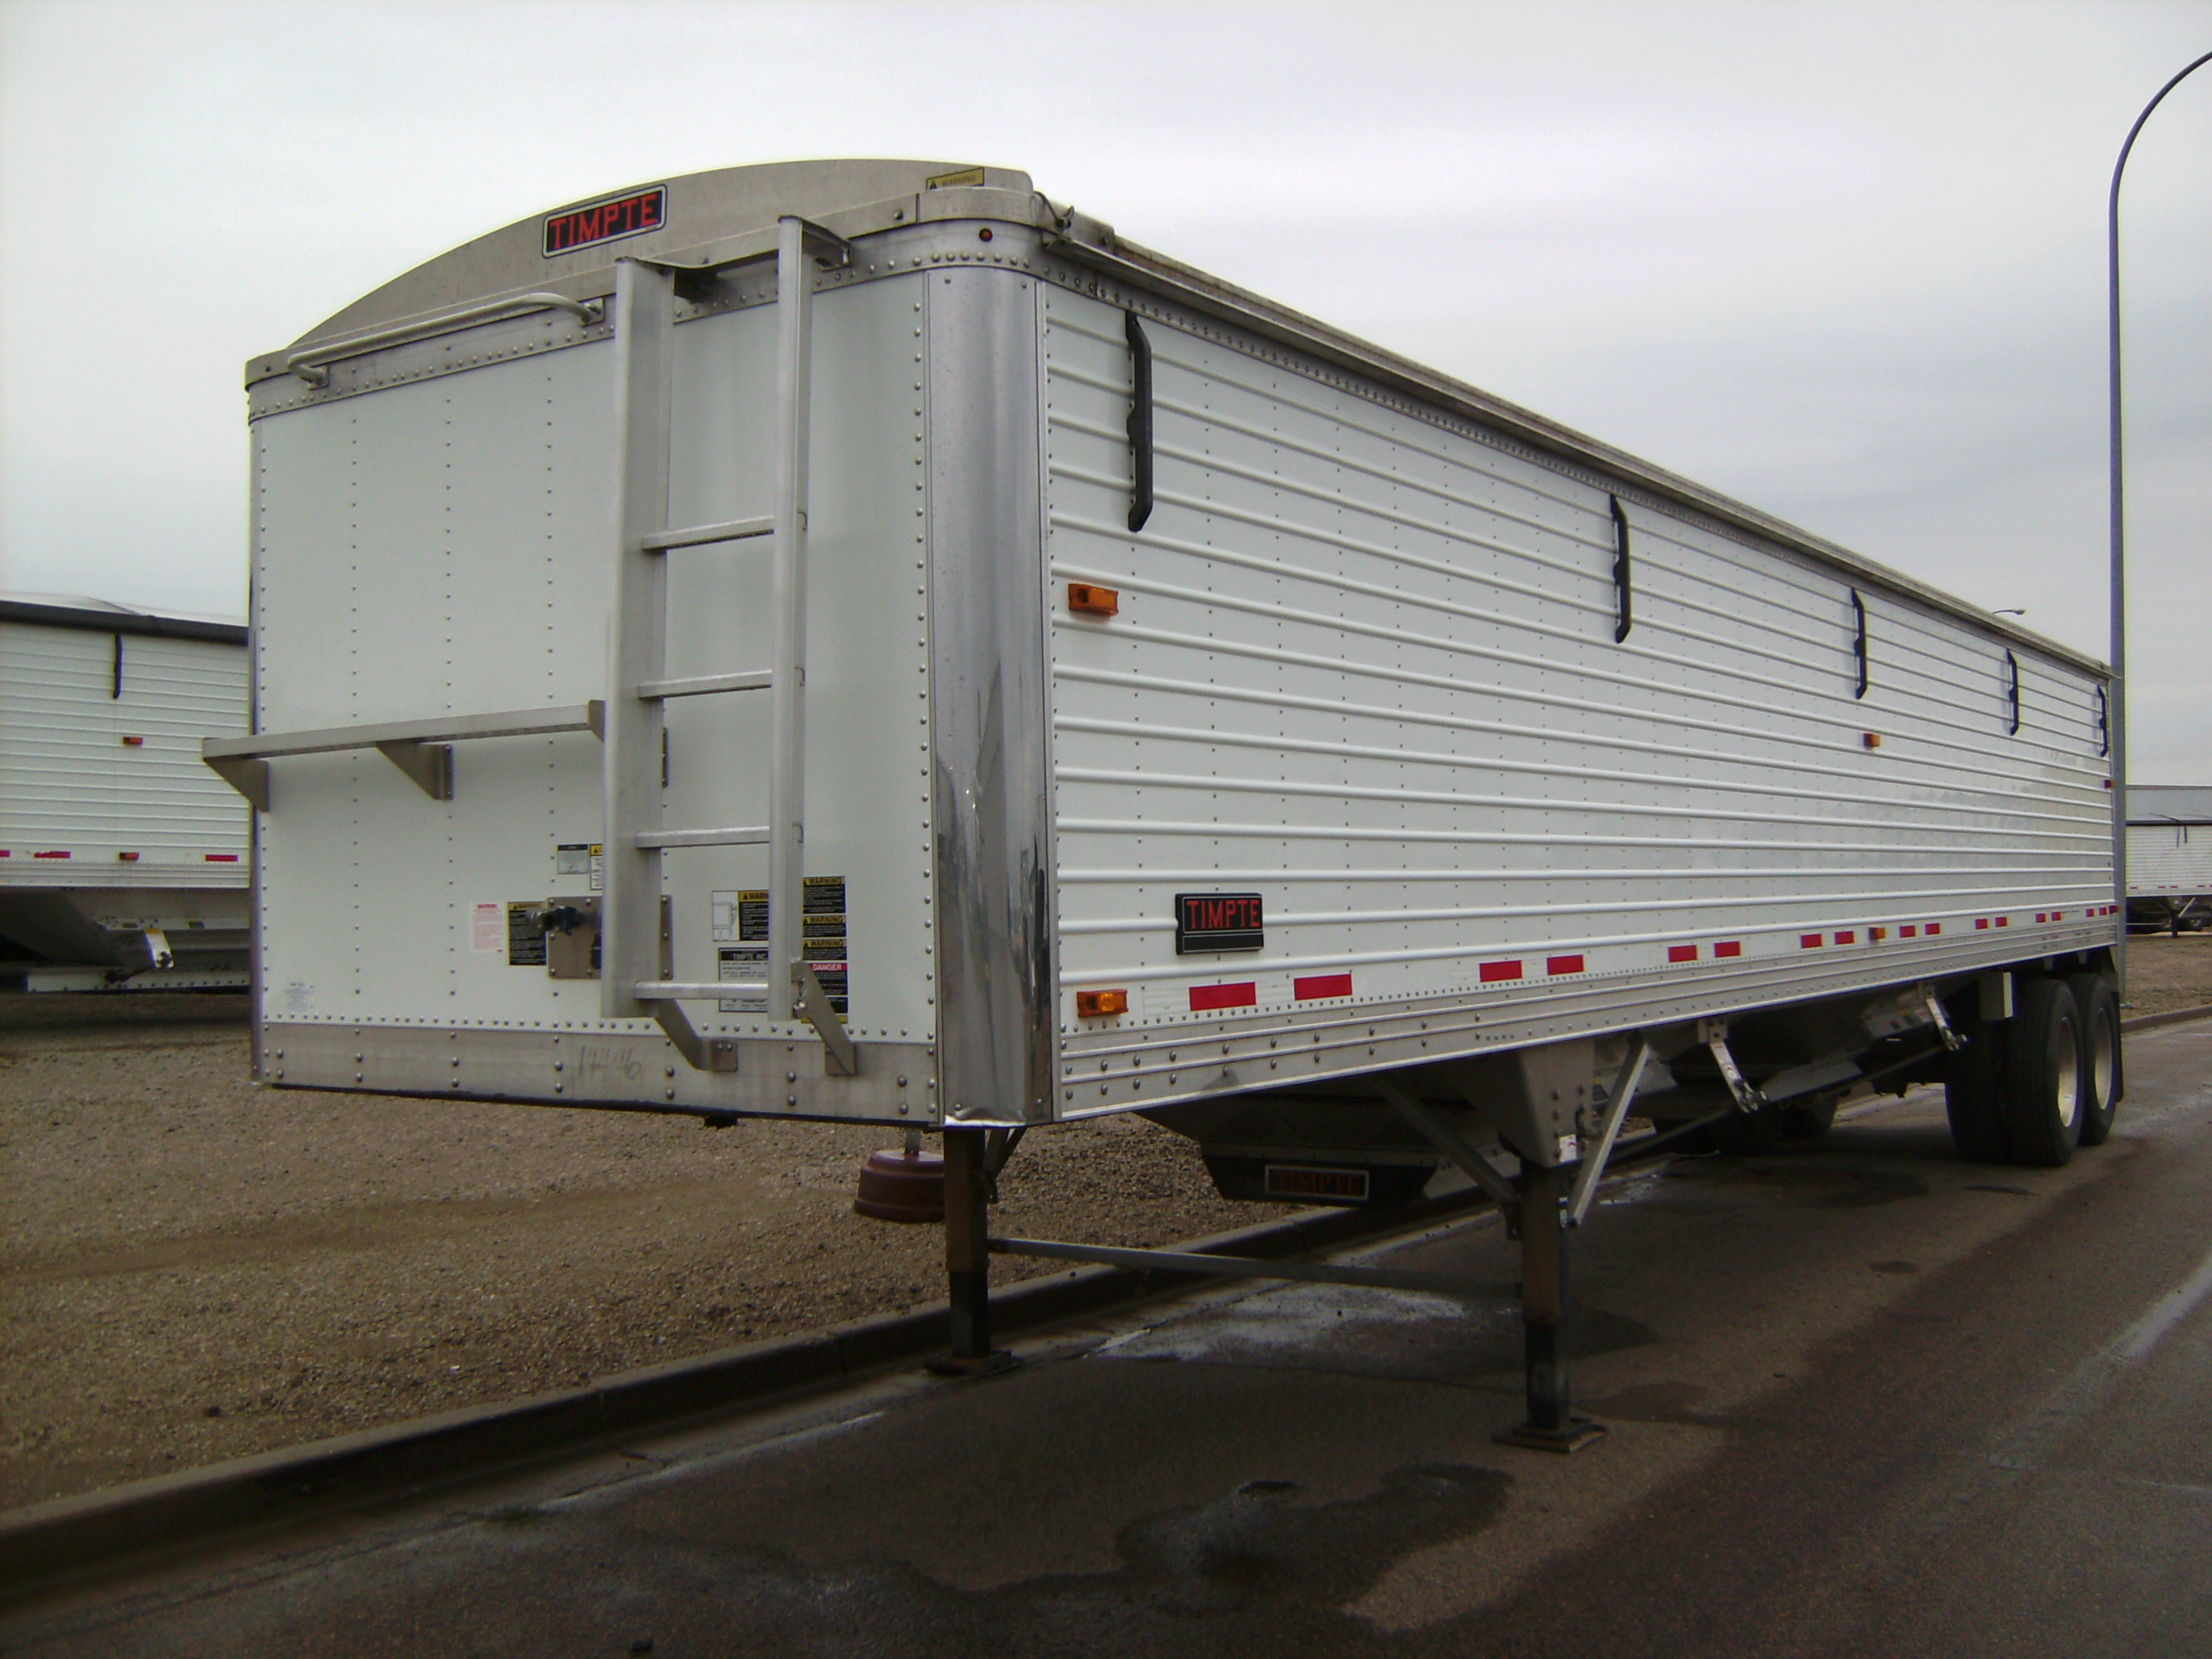 http://www.semitrailersalesandleasing.com/image/cache/2015_Timpte_40x72x96_ag_hopper_144461_002.JPG Image